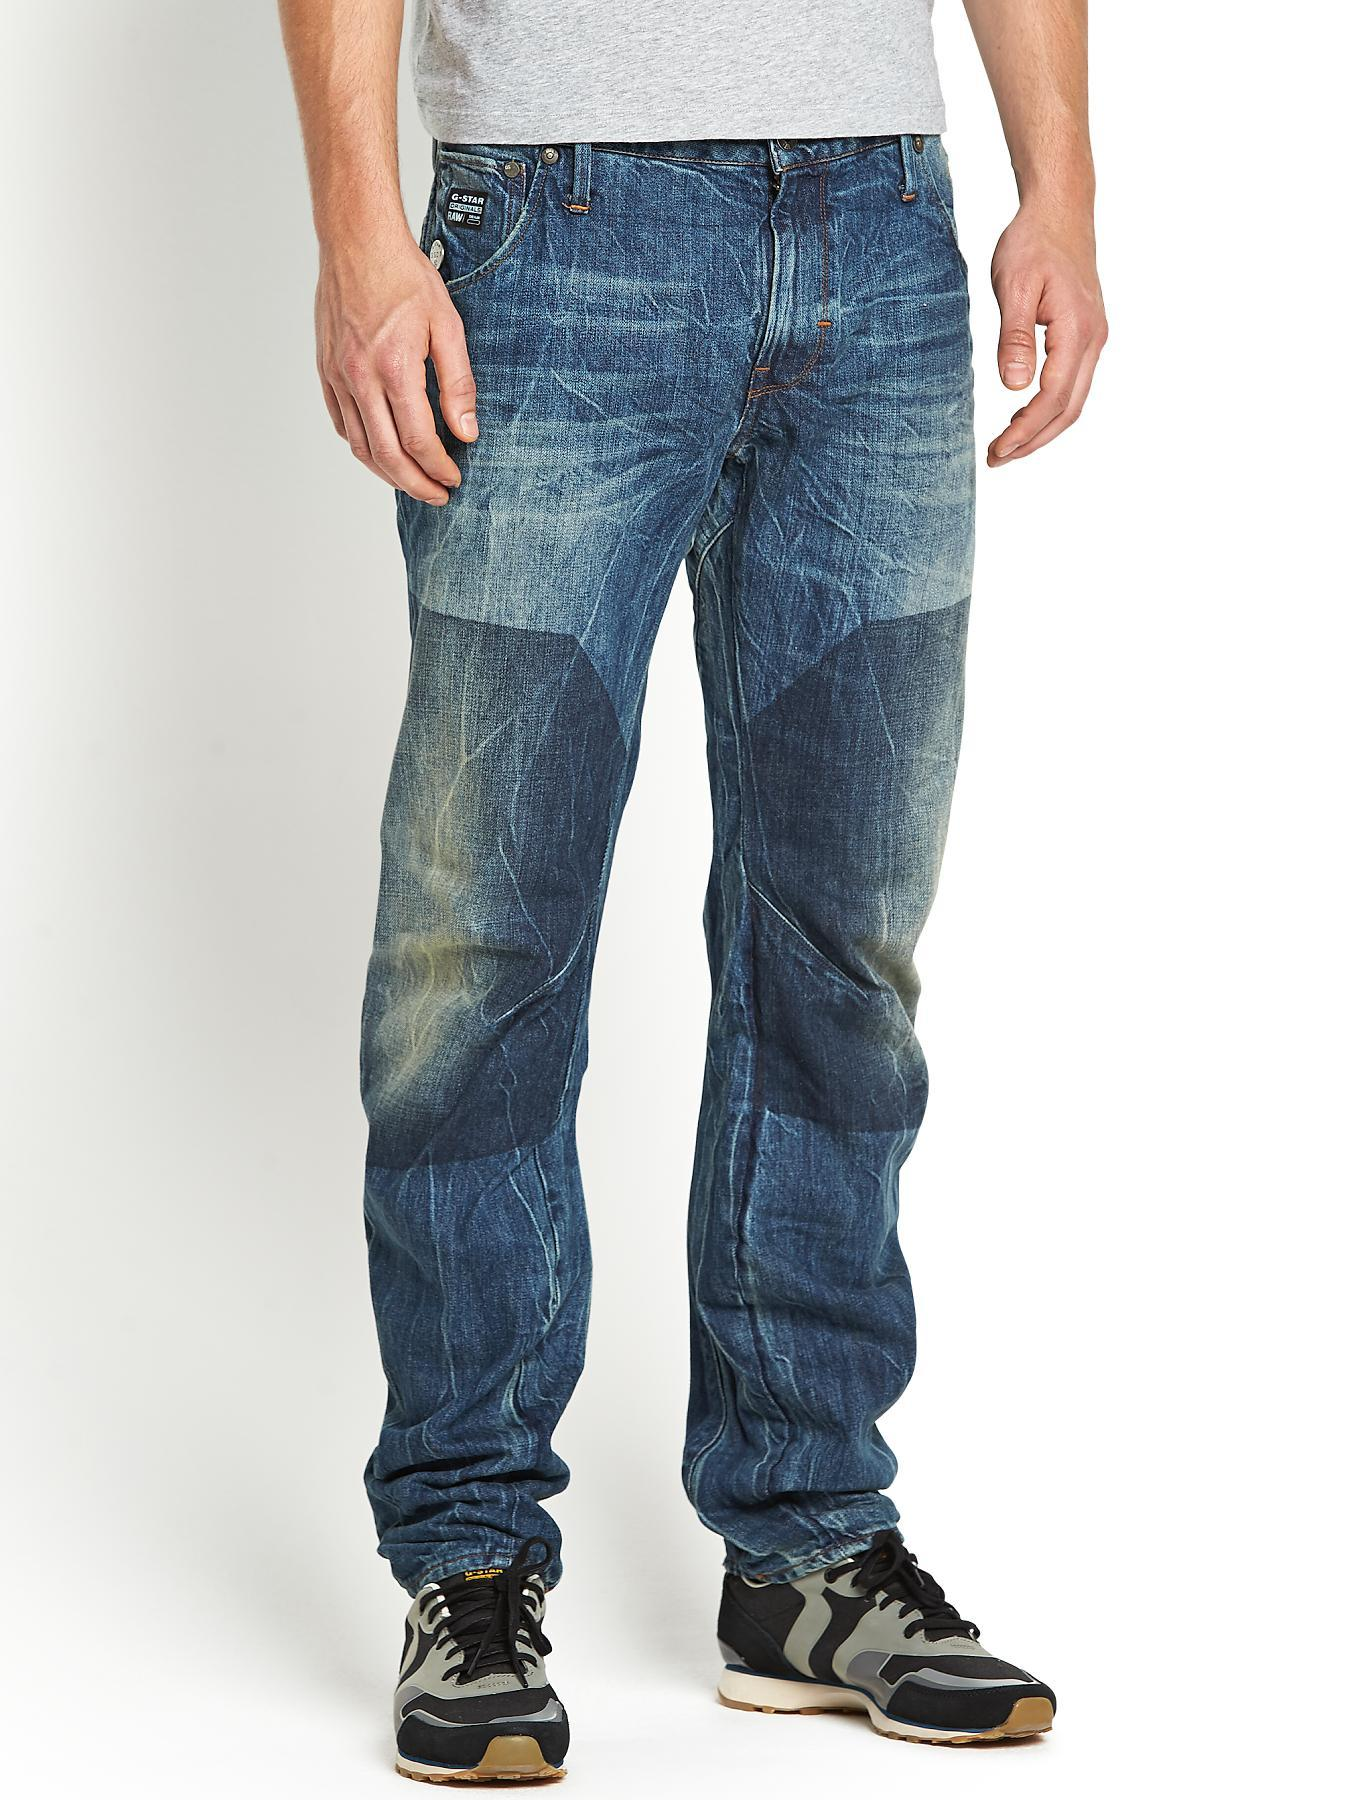 Arc Mens 3D Slim Jeans - Block Wash